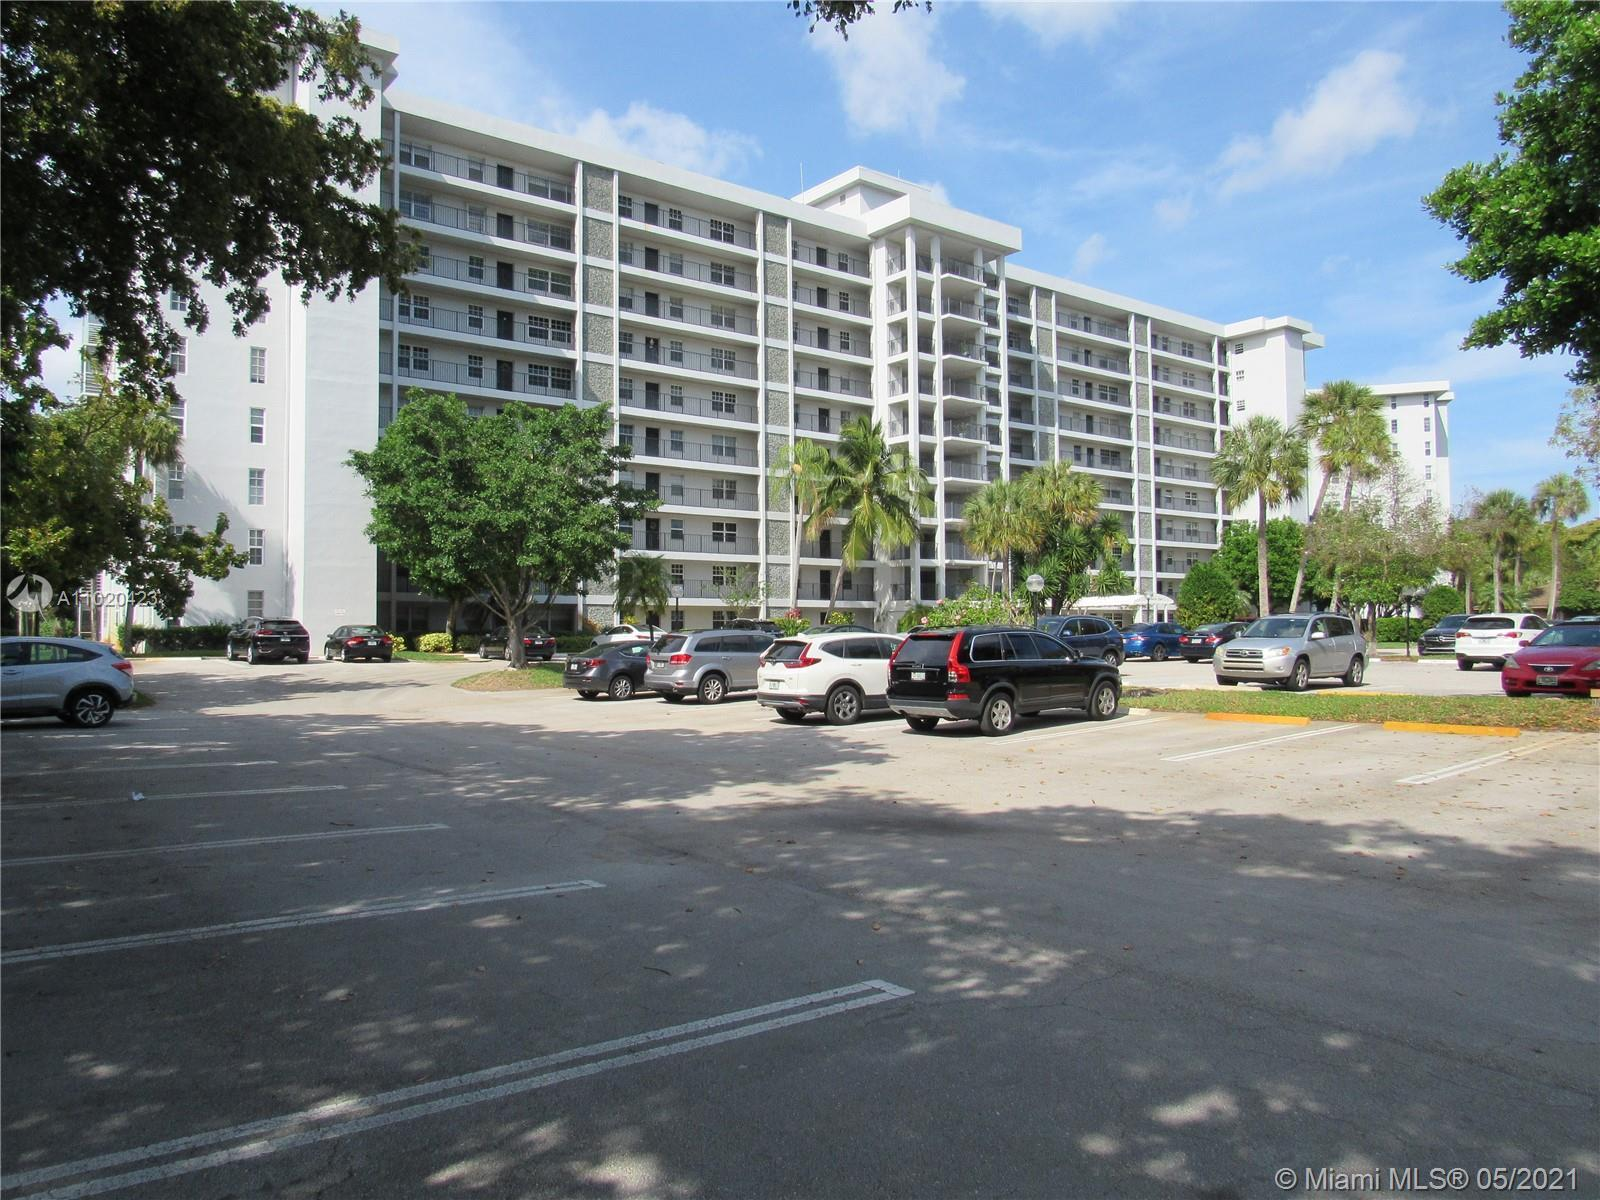 Beautiful 2 bedroom 2 bath apartment in great condition with a spectacular view on a golf course and